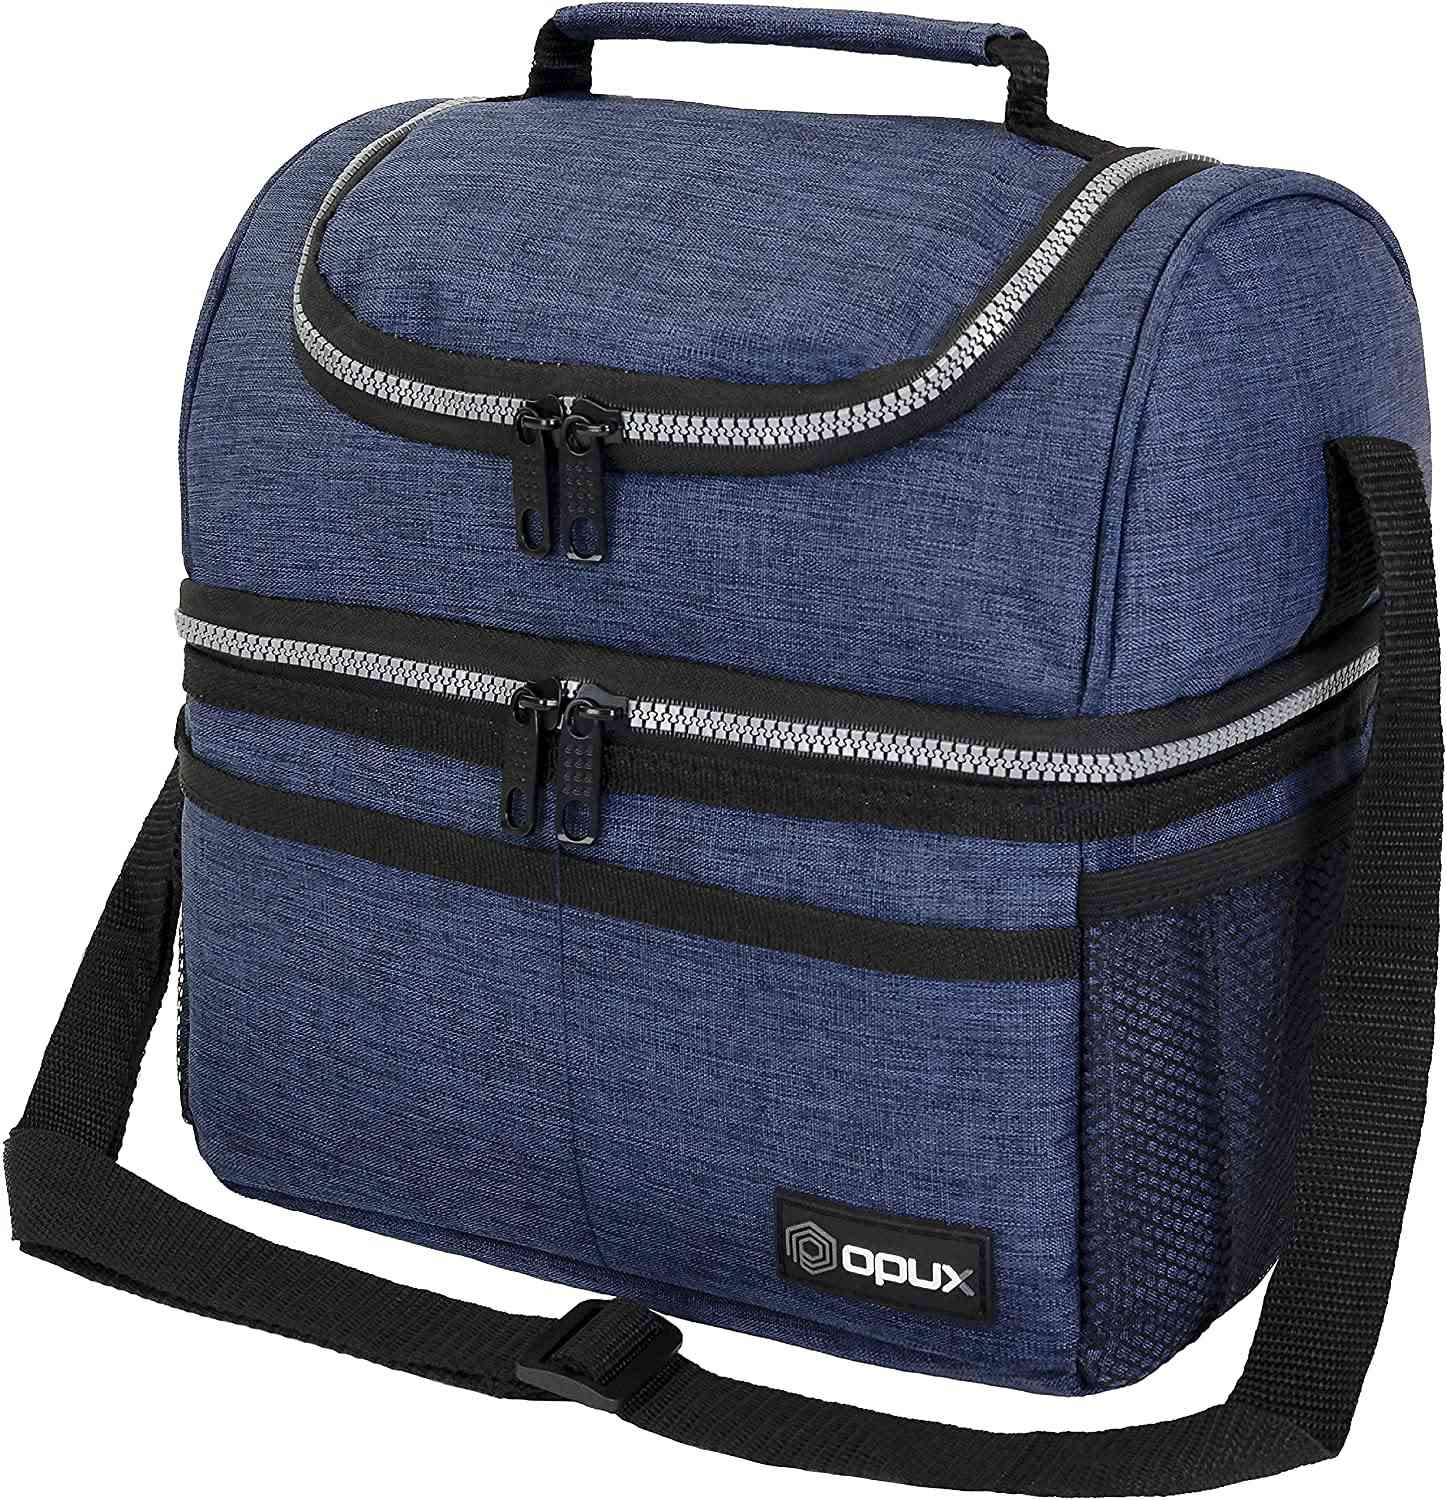 OPUX Insulated Dual Compartment Lunch Bag